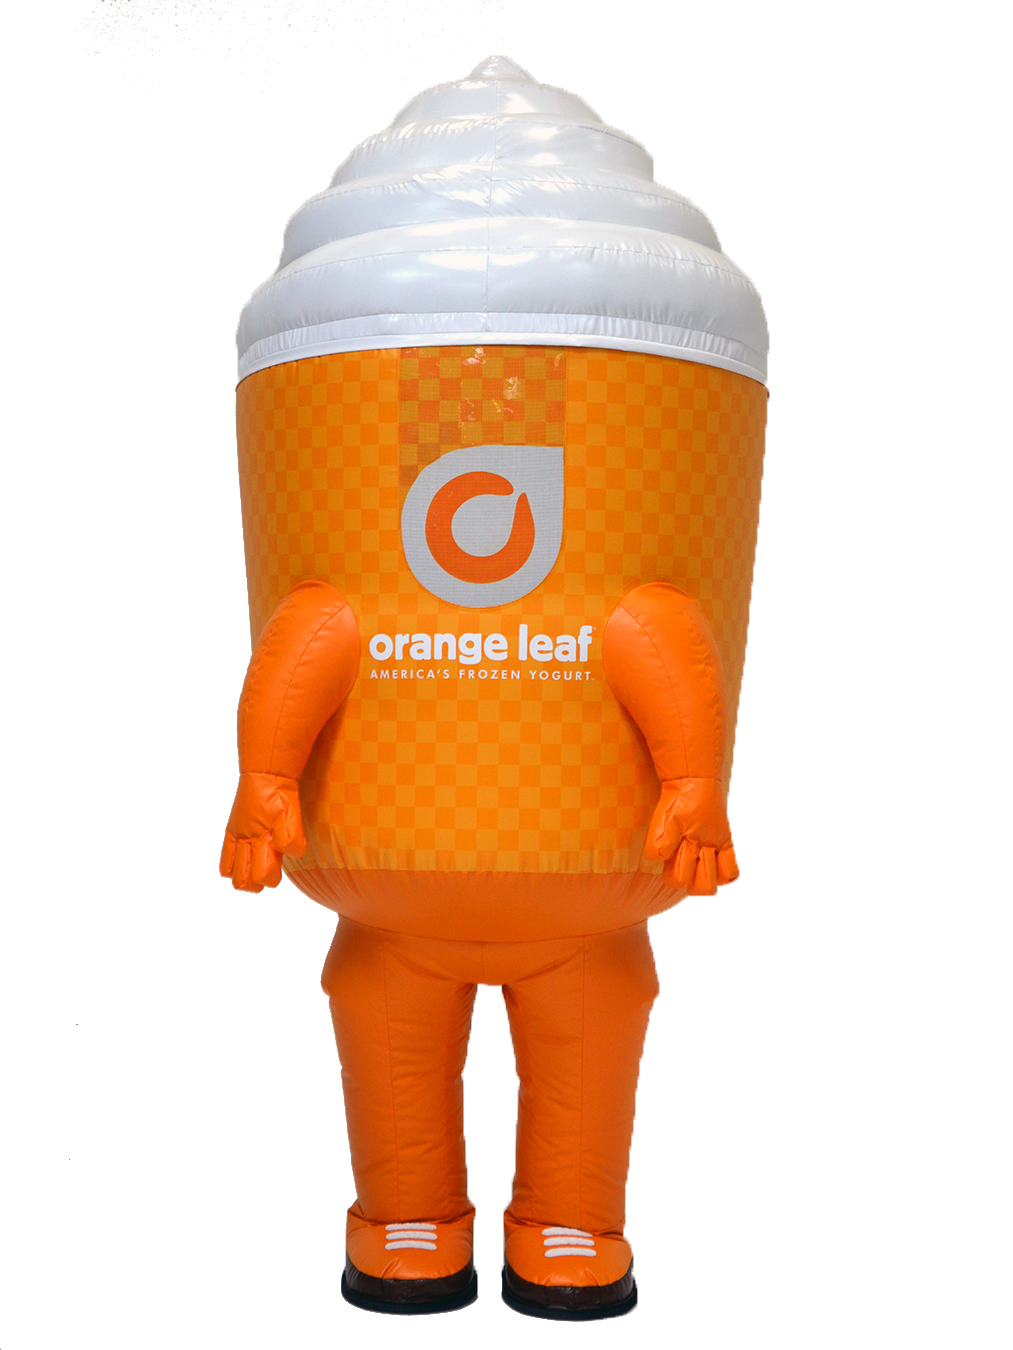 INFLATABLE ORANGE LEAF FROZEN YOGURT MASCOT